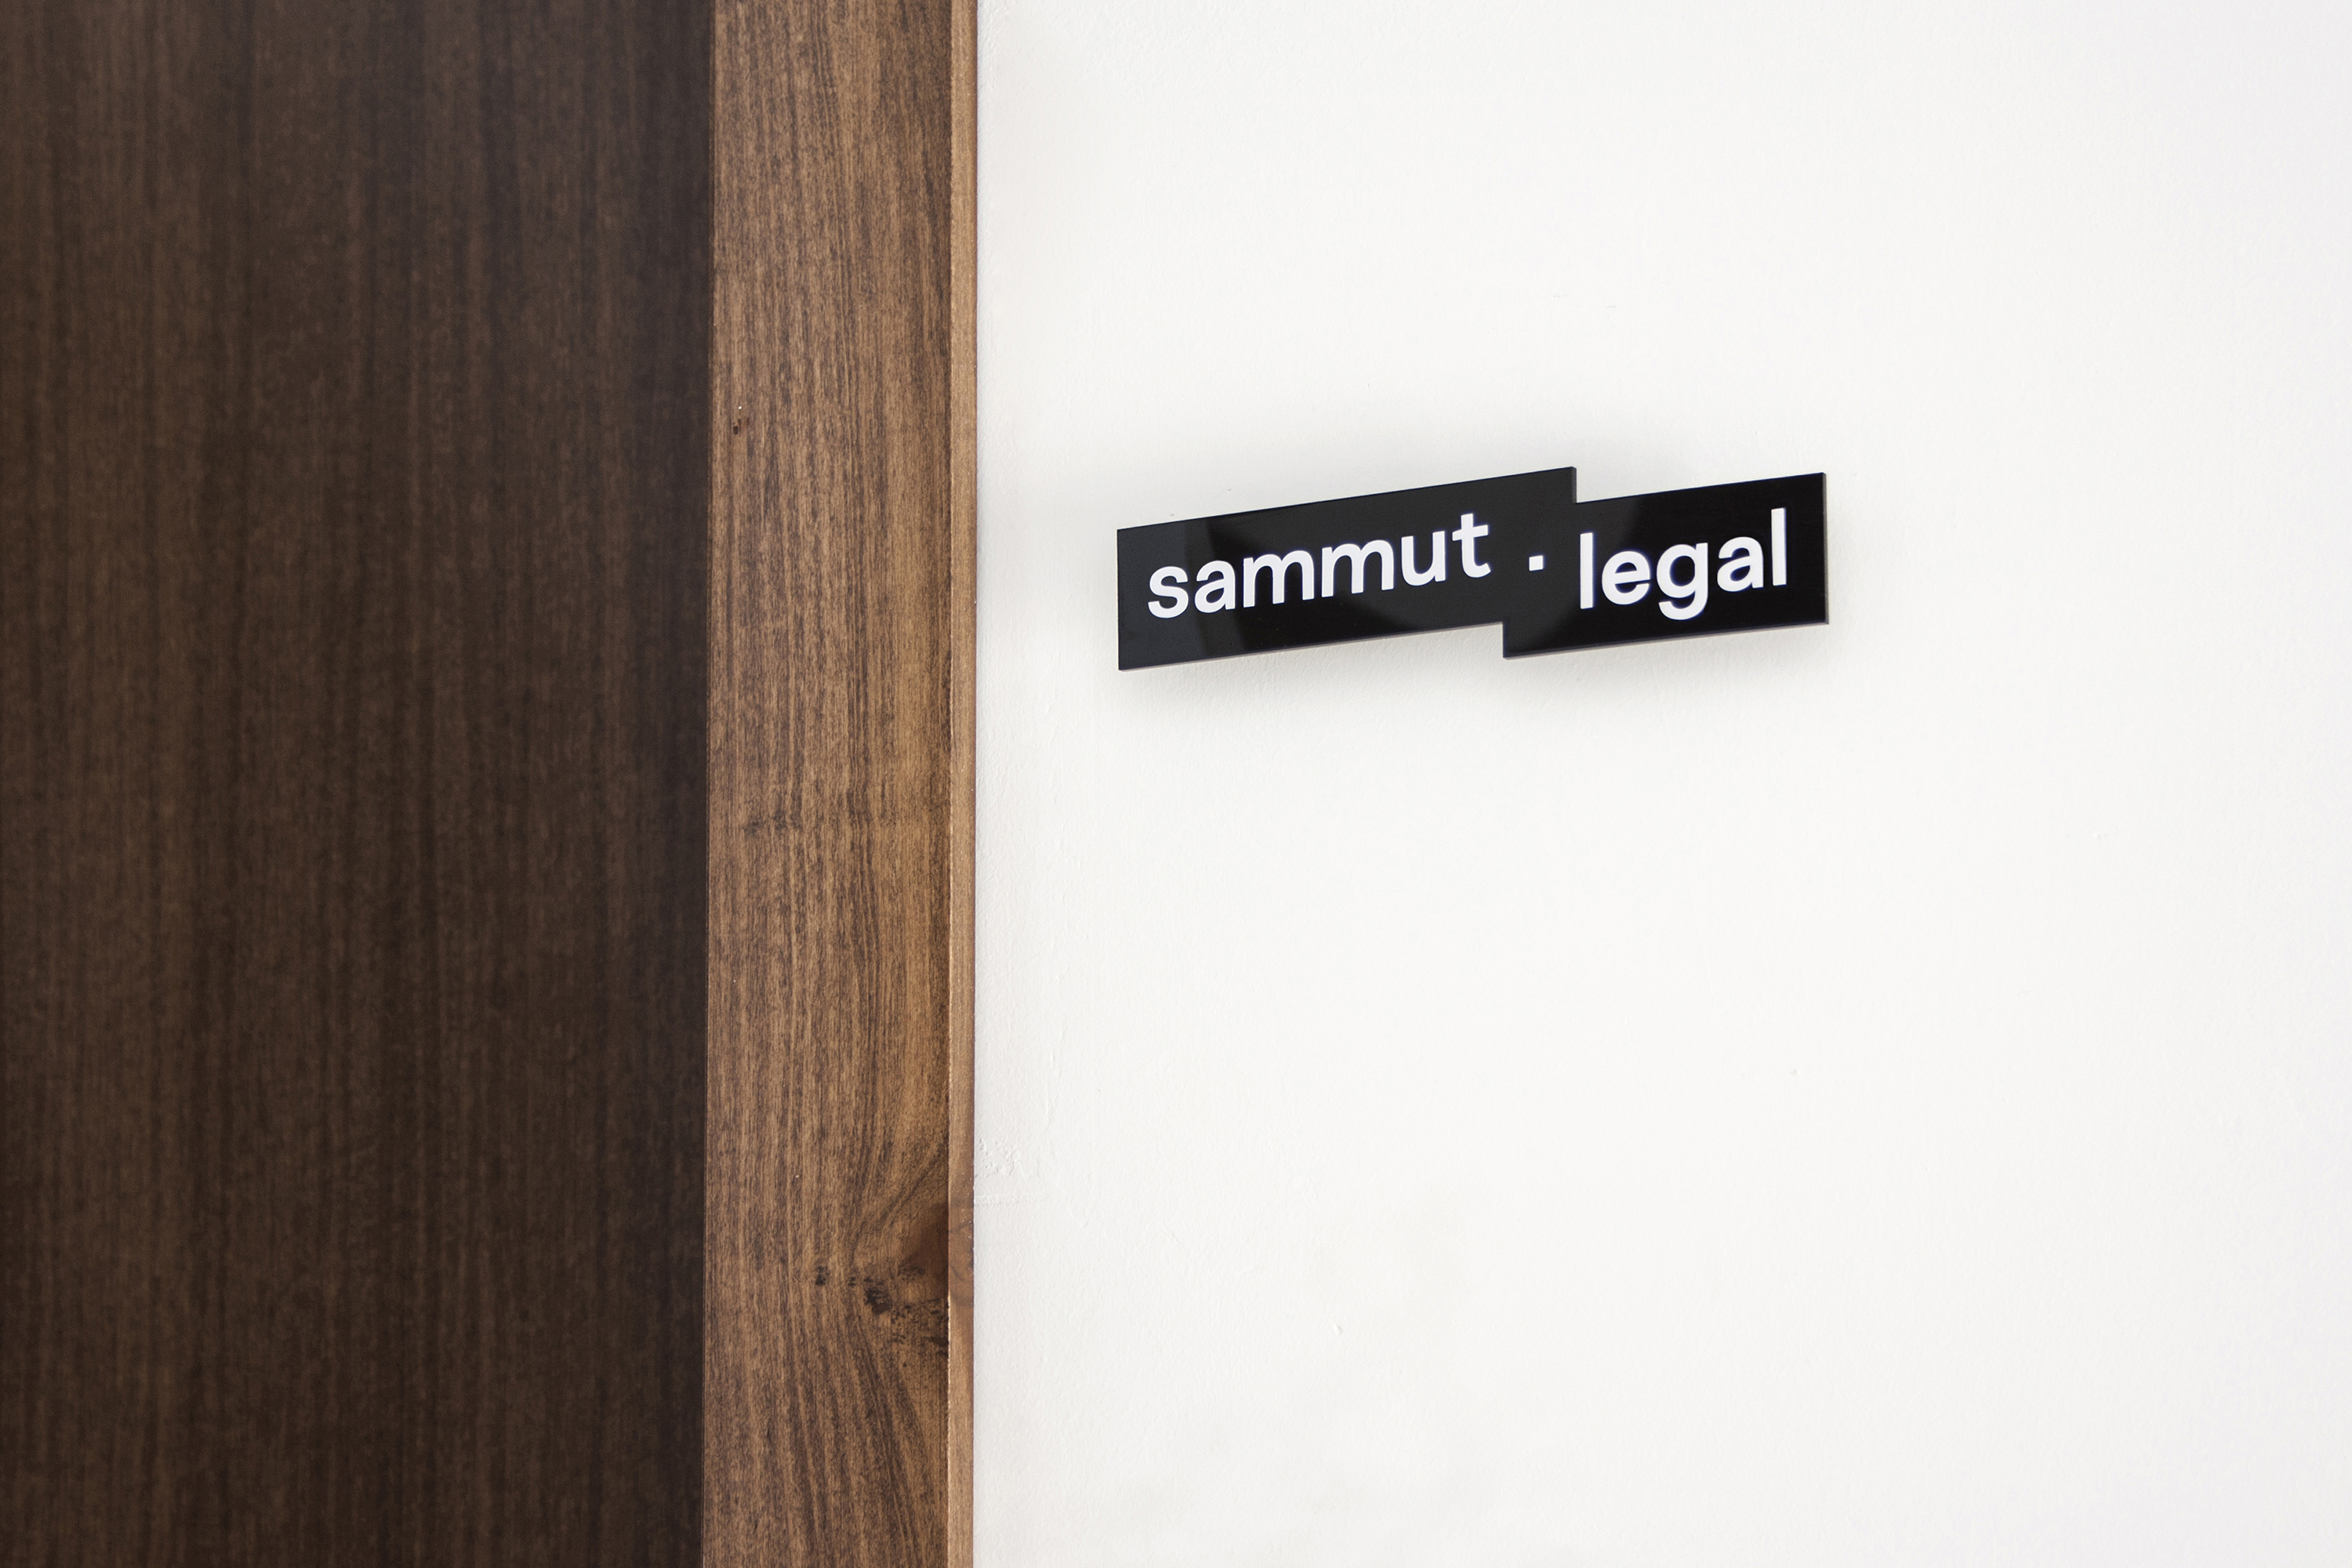 2point3 sammut.legal